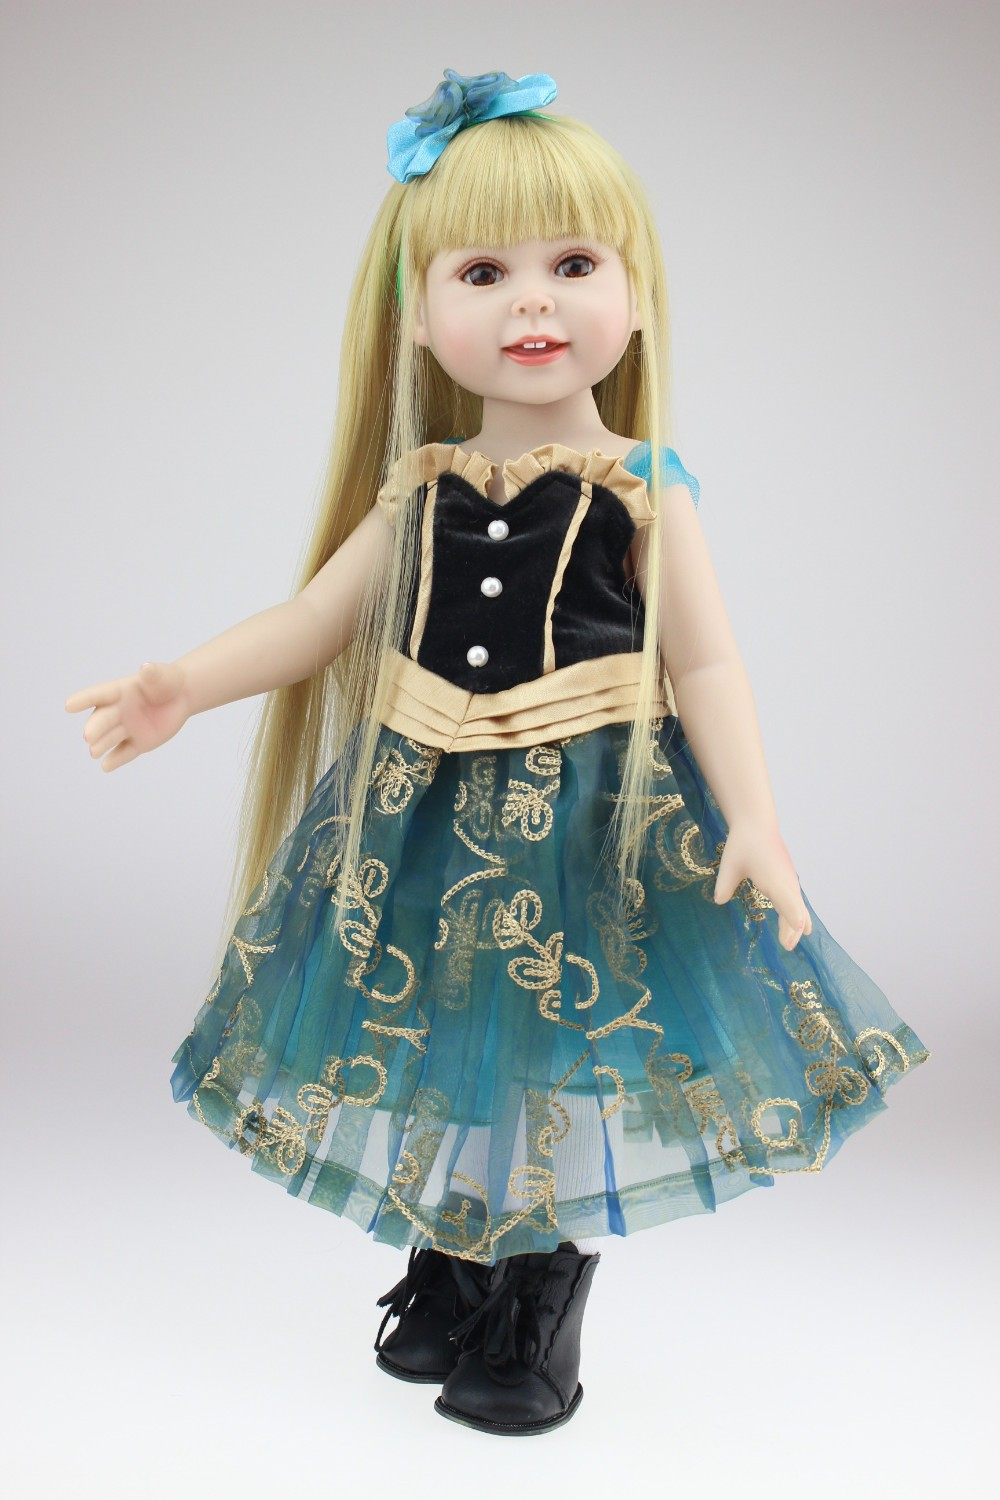 NPK New design 18inches American girl doll Journey Girl Dollie& me New Year present great girl gift 2015new 18inches american girl doll journey girl dollie